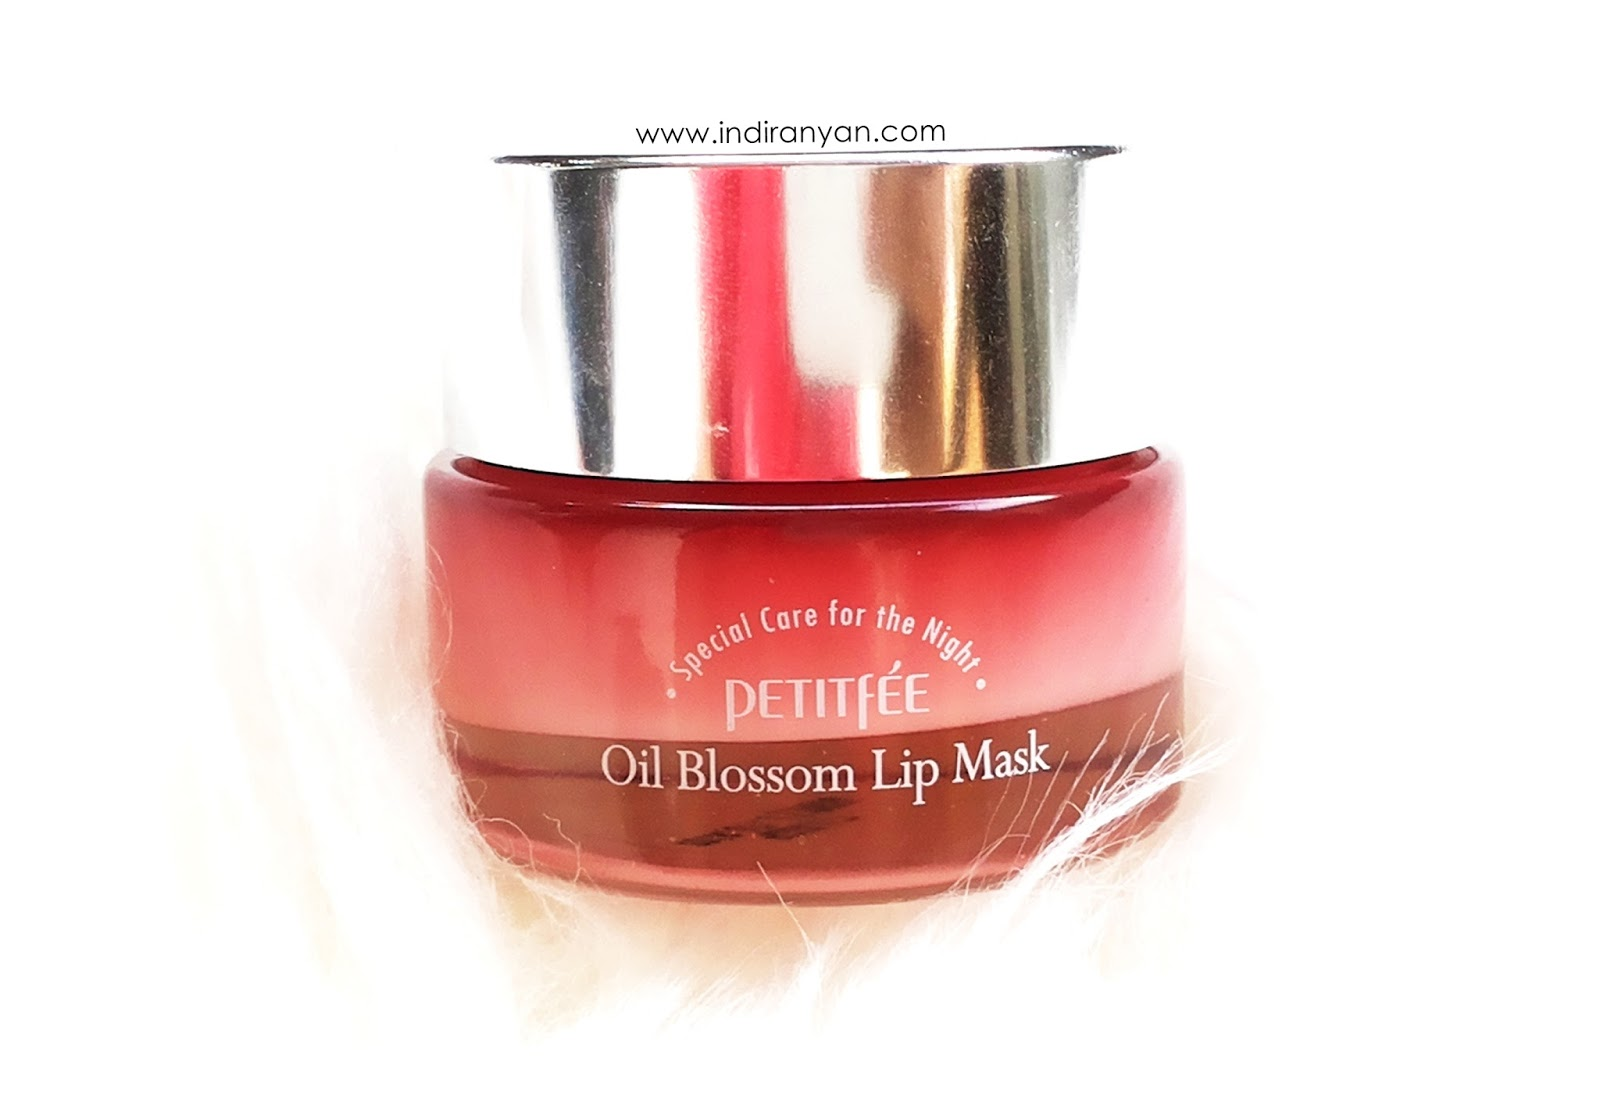 petitfee-oil-blossom-lip-mask-review, review-petitfee-oil-blossom-lip-mask, petitfee-oil-blossom-lip-mask